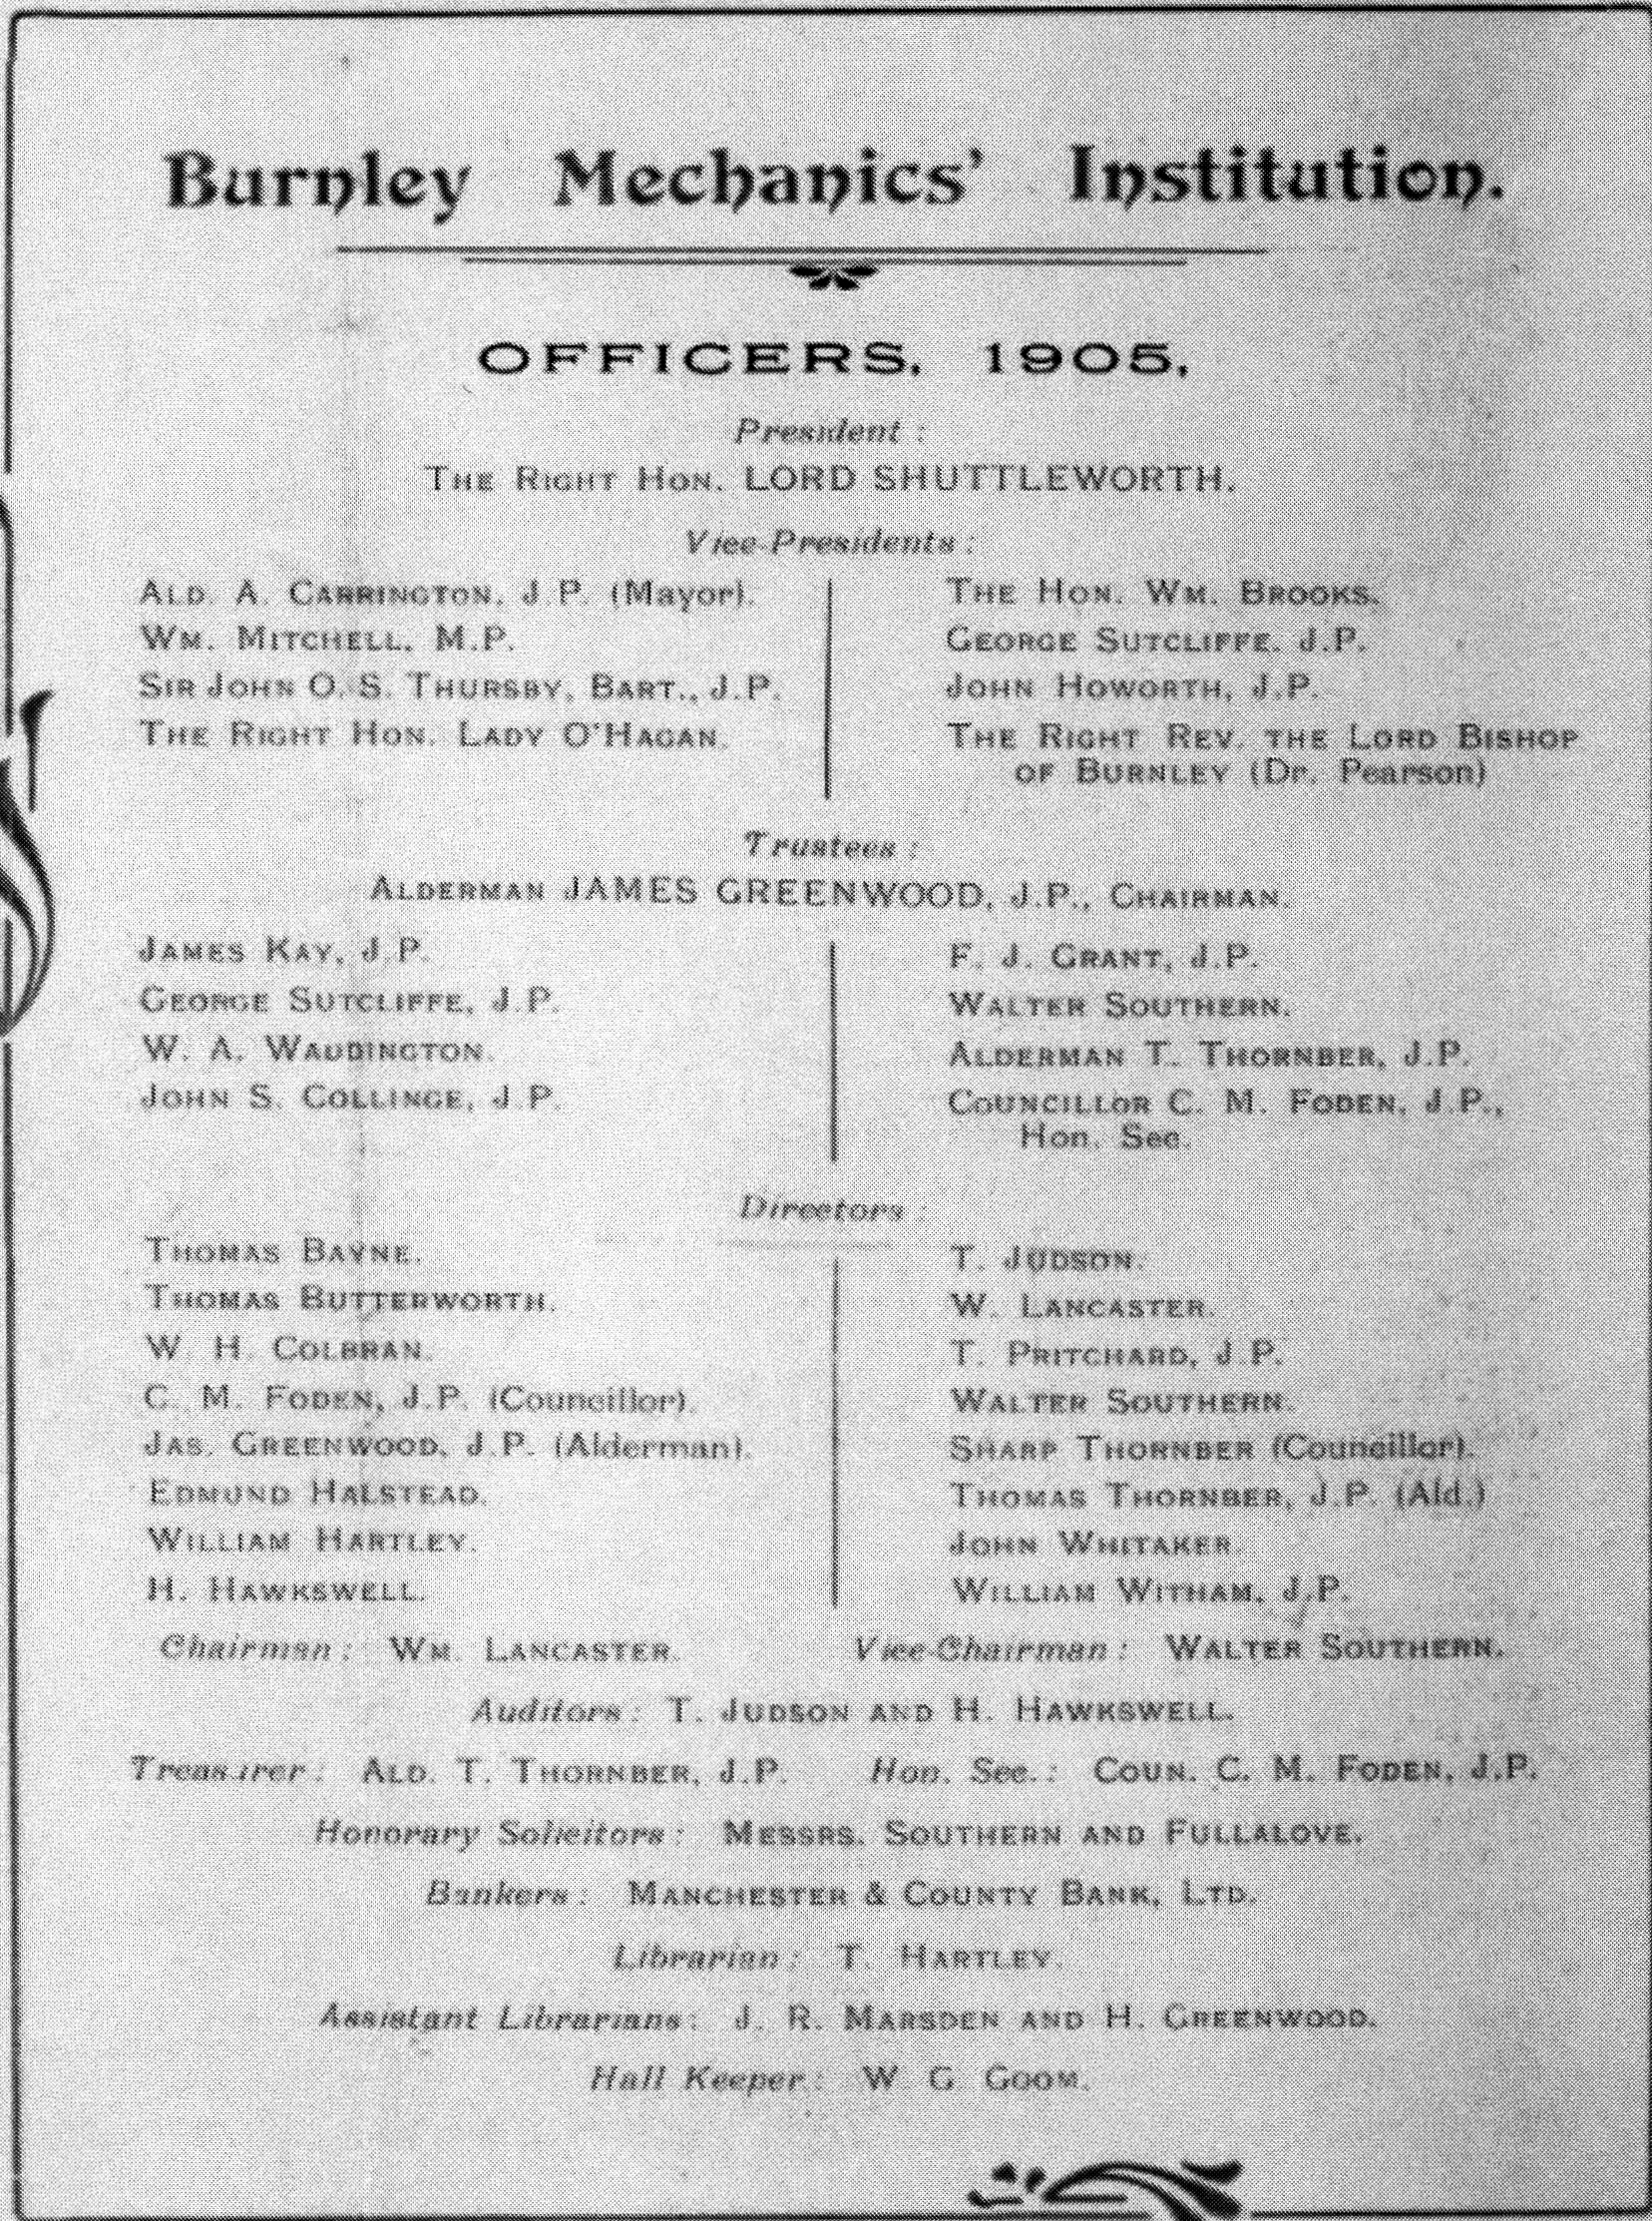 List of Officers 1905